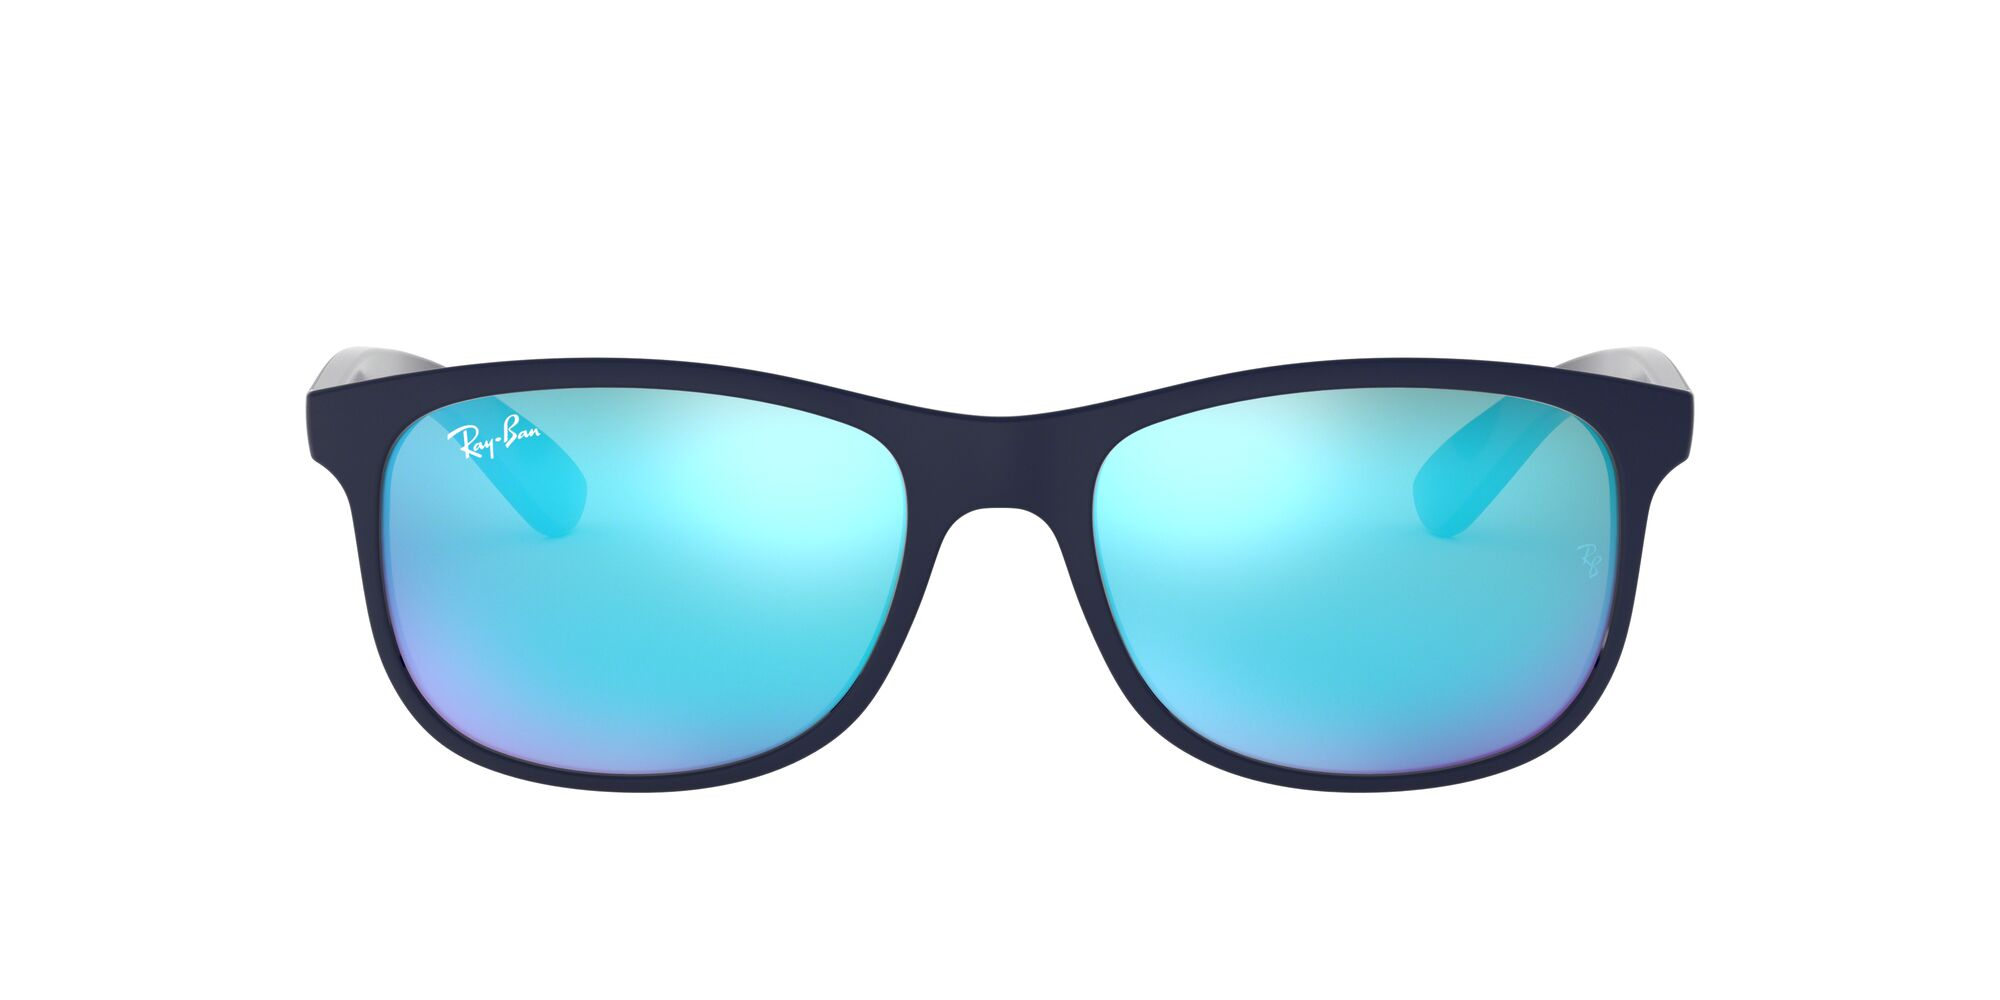 Front Ray-Ban Ray-Ban 0RB4202 615355 55/17 Blauw/Groen